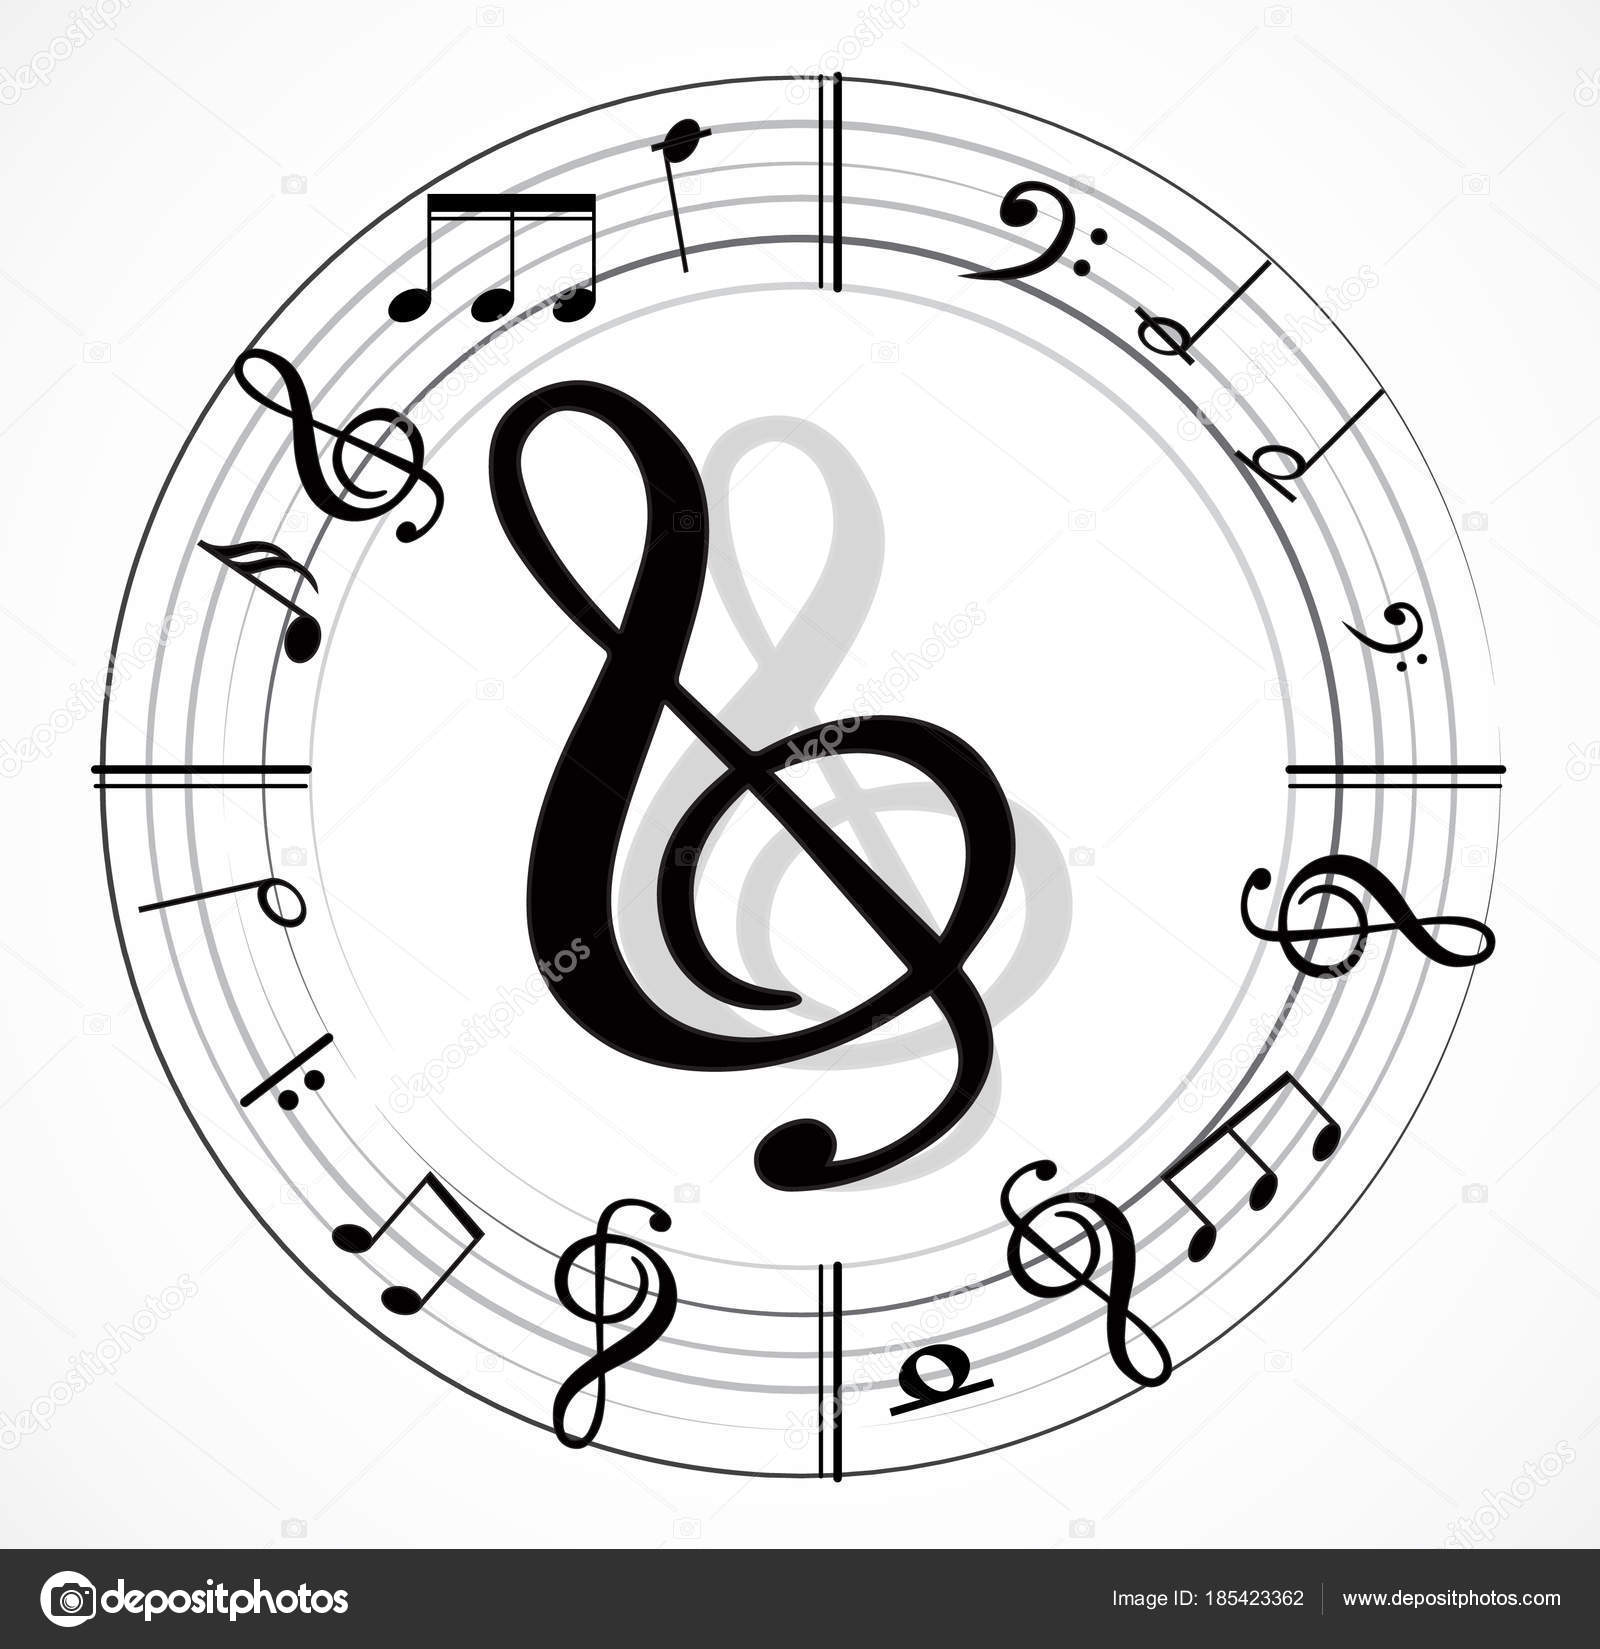 Music note different music symbols stock vector lahiruudara music note different music symbols stock vector buycottarizona